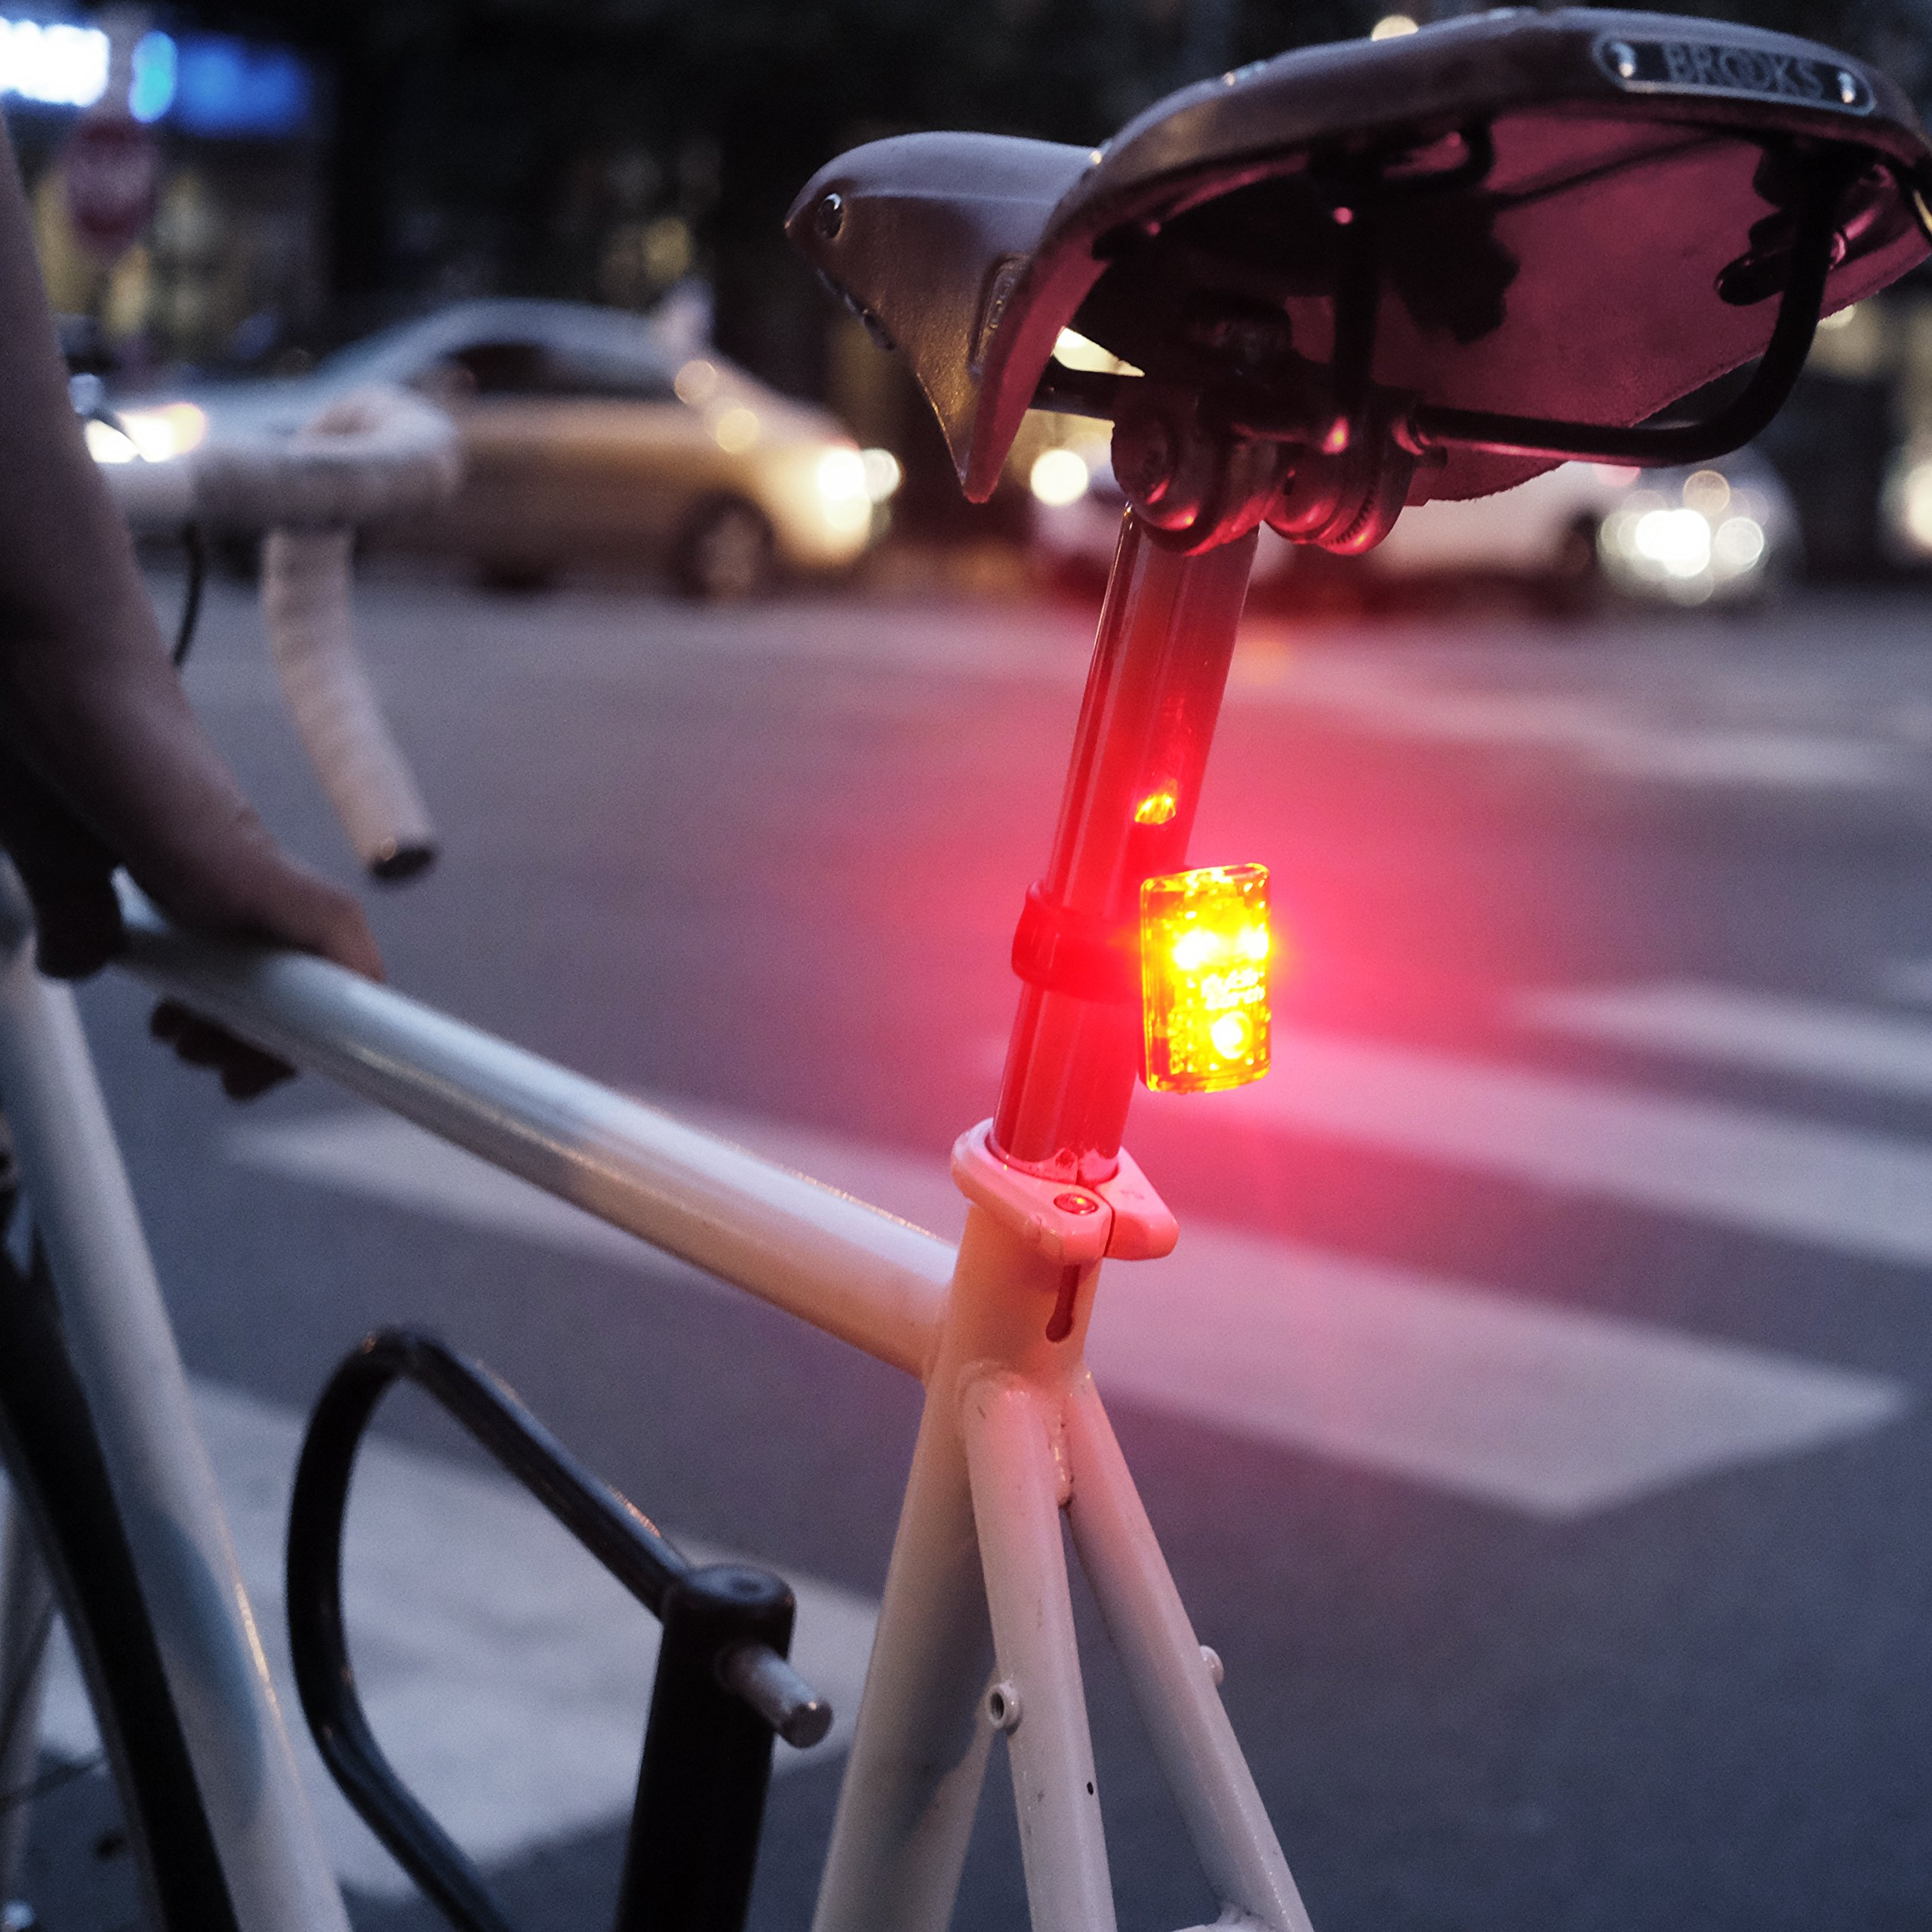 Cycle Torch Night Owl USB Rechargeable Bike Light Set, Perfect Commuter Safety Front and Back Bicycle Light LED Combo - FREE Bright TAIL LIGHT - Compatible with Mountain, Road, Kids & City Bicycles by Cycle Torch (Image #5)